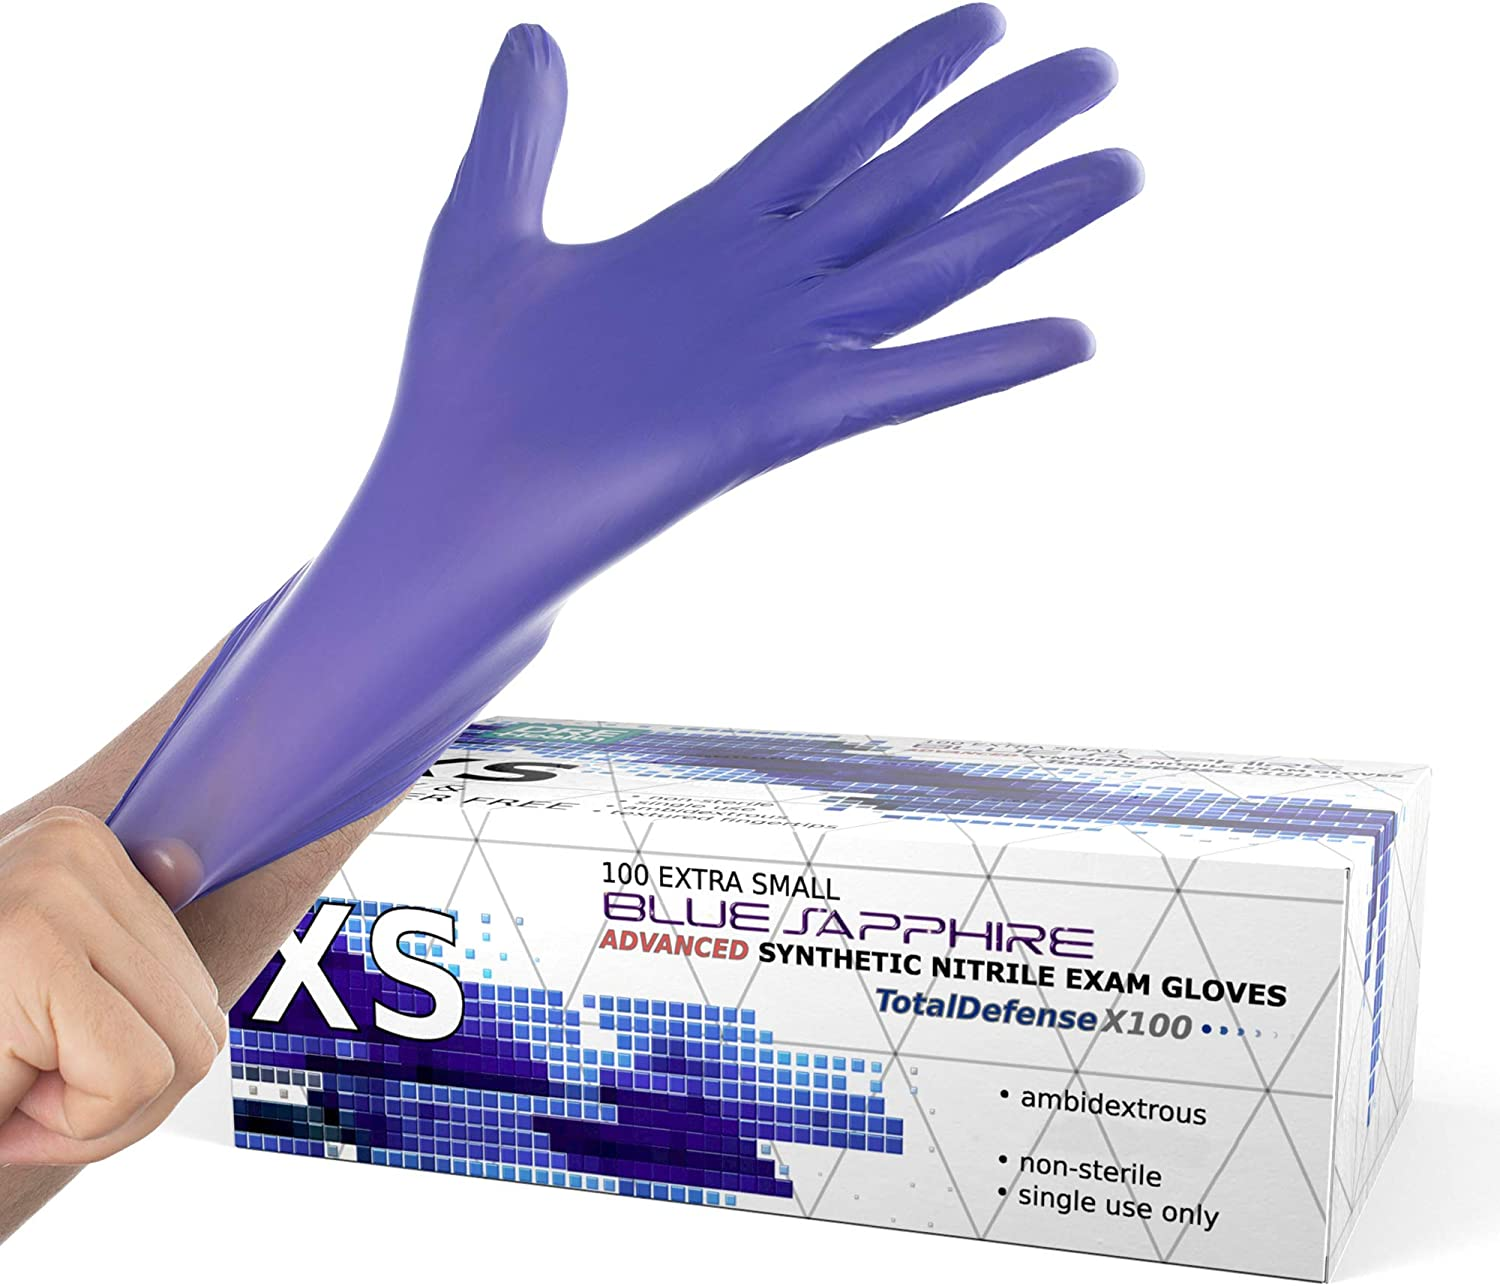 Powder Free Disposable Gloves X Small - 100 Pack - Nitrile and Vinyl Blend Material - Extra Strong, 4 Mil Thick - Latex Free, Food Safe, Blue - Medical Exam Gloves, Cleaning Gloves